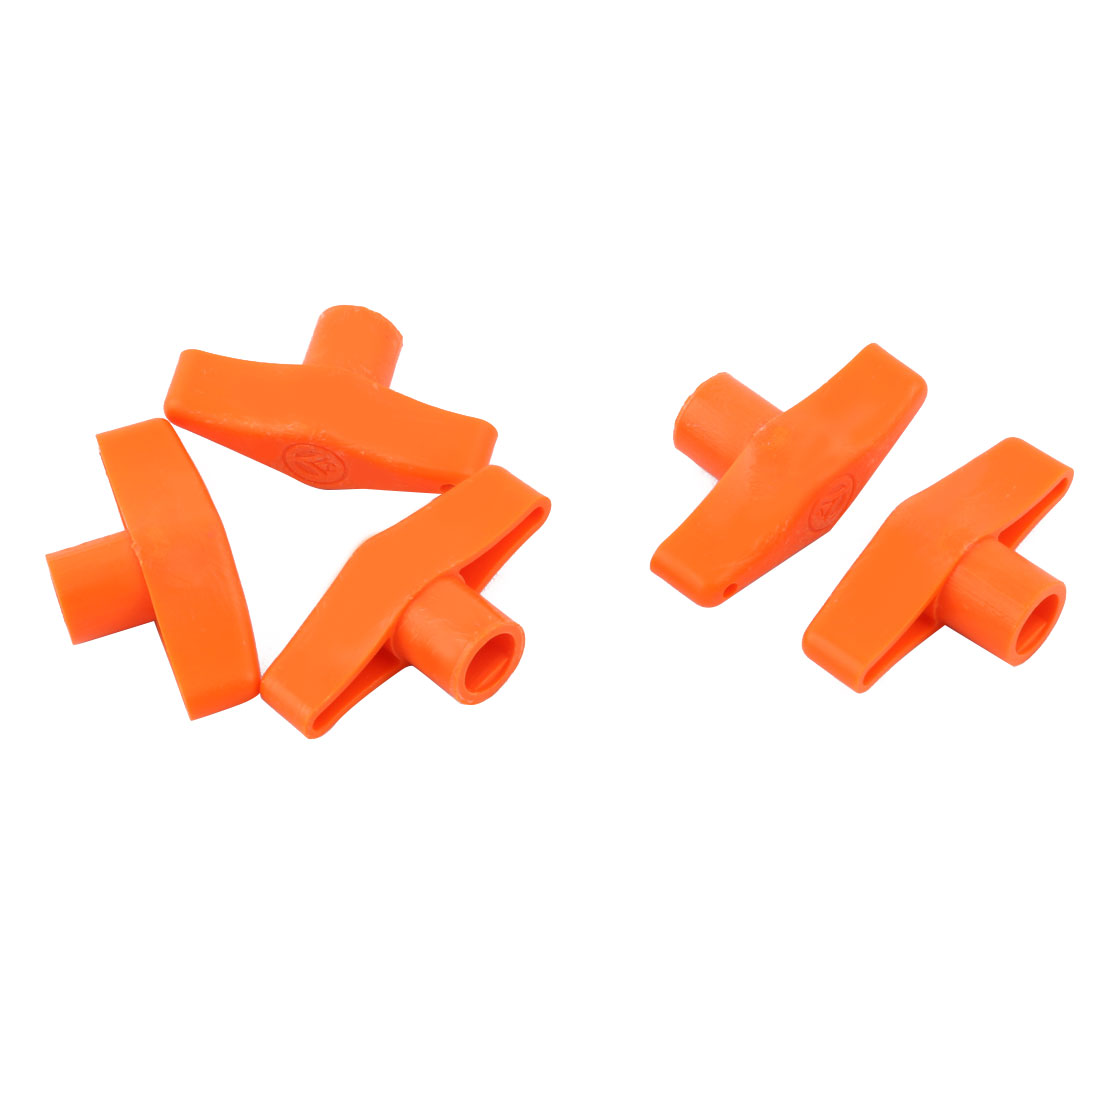 Family Kitchen Accessories Plastic Tap Faucet Aerator Spanner Wrench Orange 5pcs